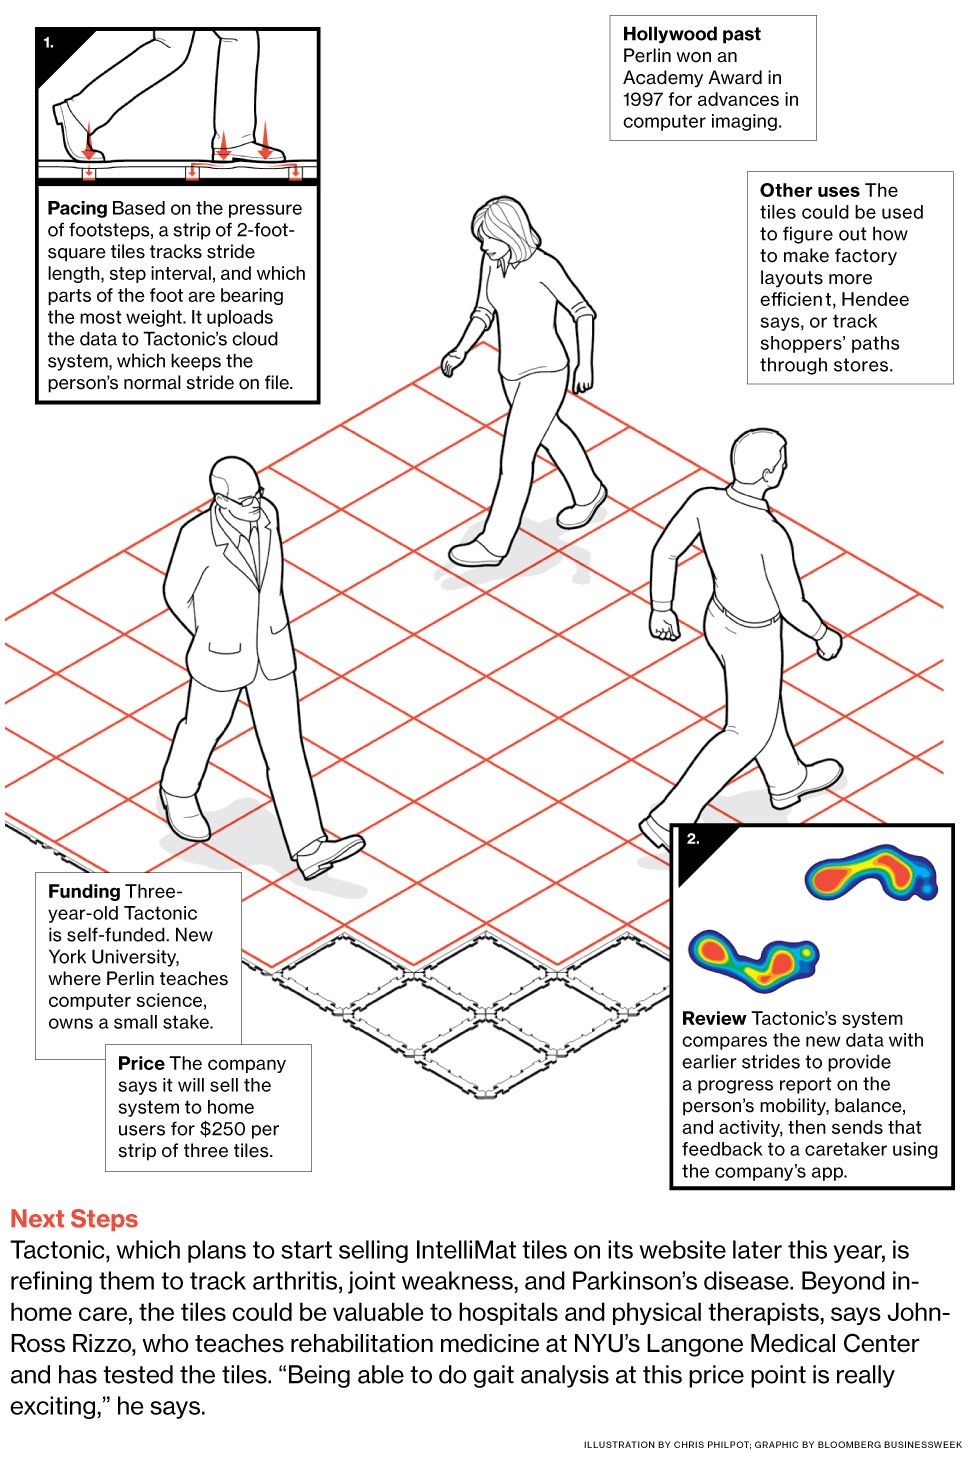 Innovation Floor Tiles That Can Monitor The Health Of The Elderly Home Automation Project Embedded Image Permalink Pattern